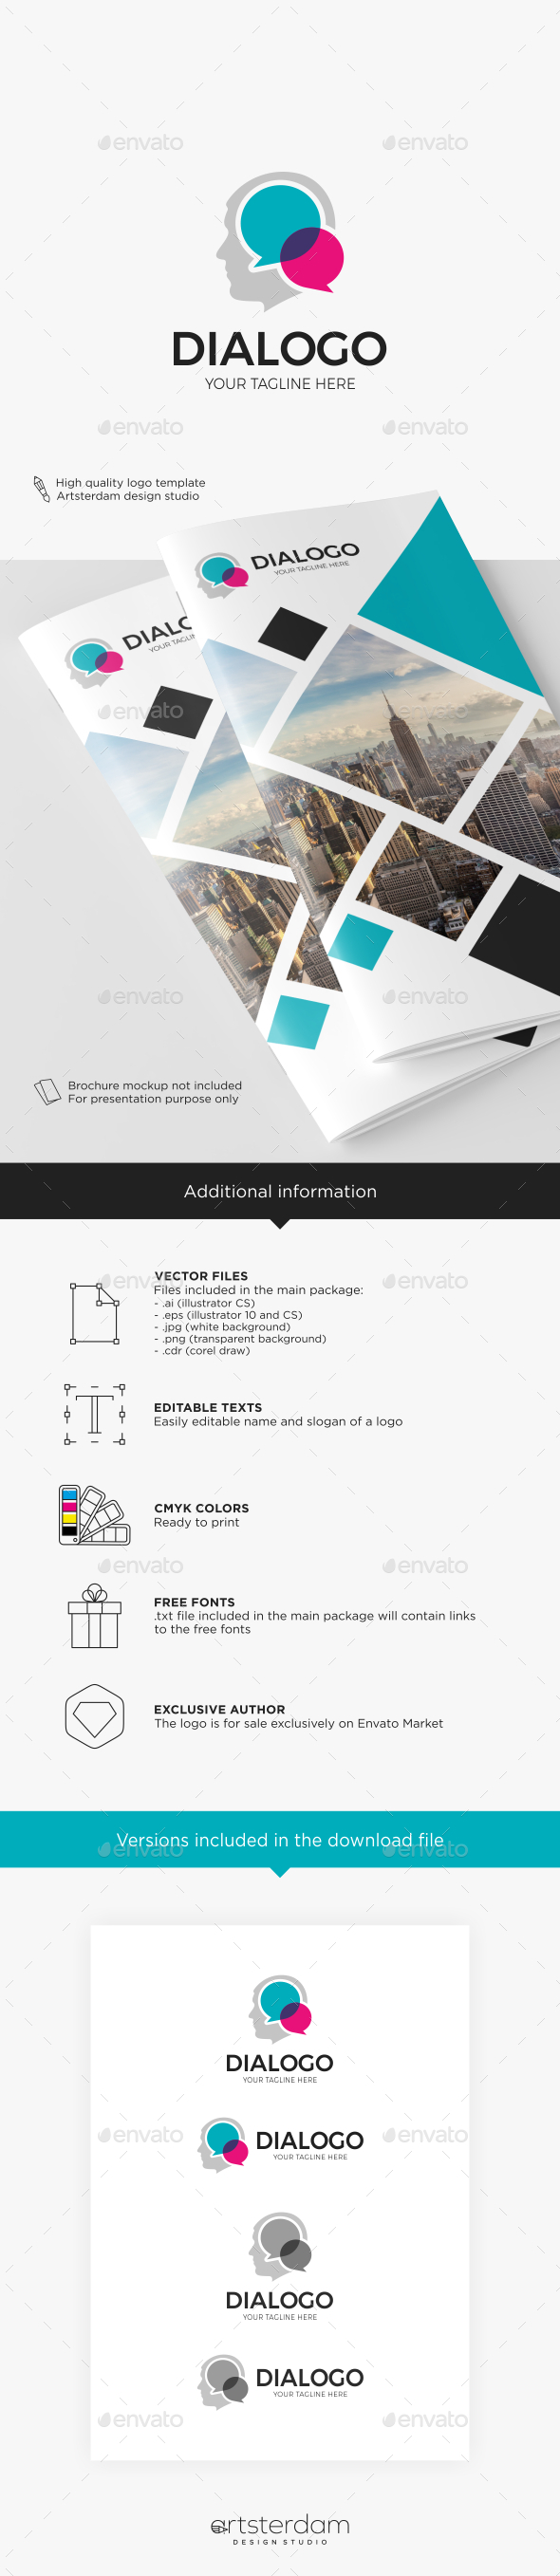 logo designs u0026 templates from graphicriver